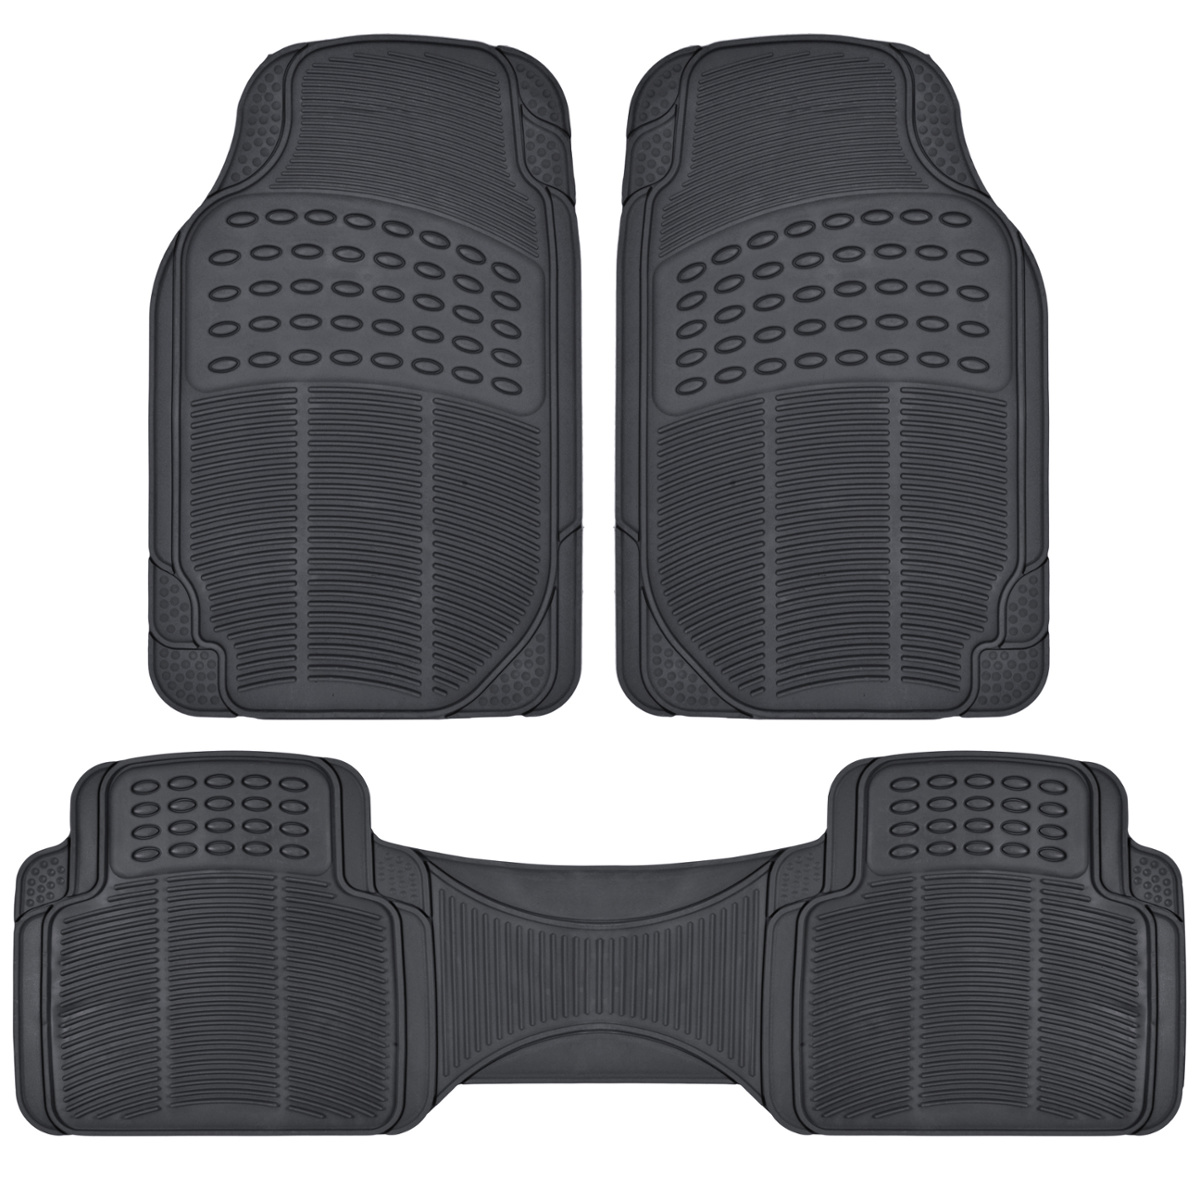 Car Rubber Floor Mats Car SUV Truck Black All Weather